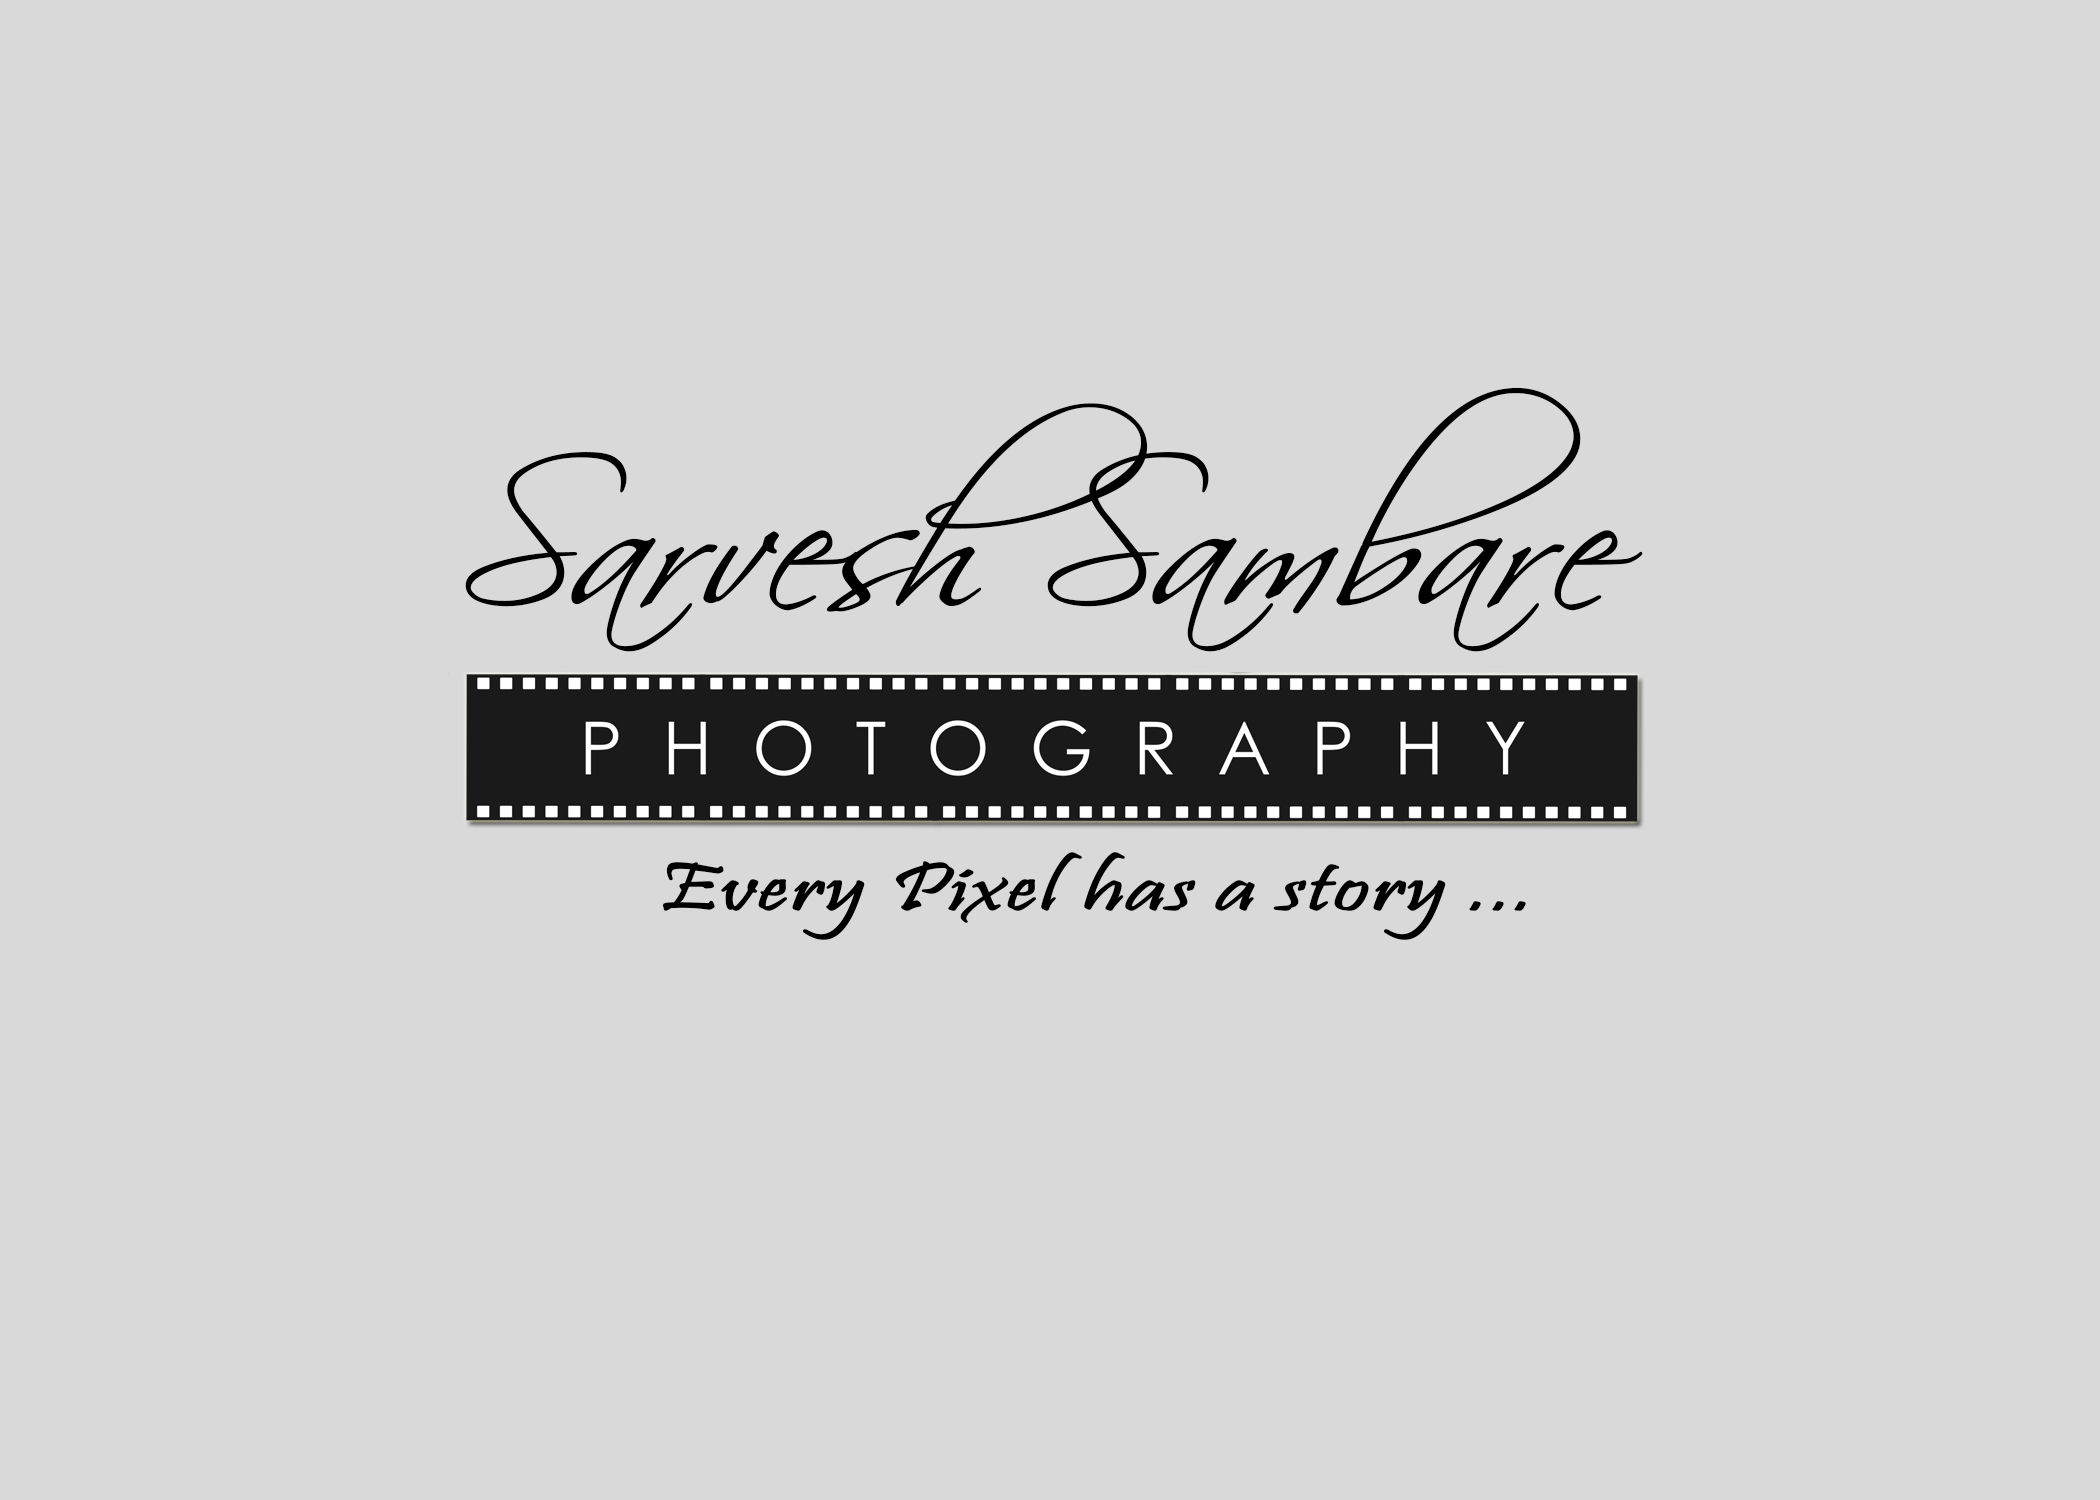 Sarvesh Sambare Photography